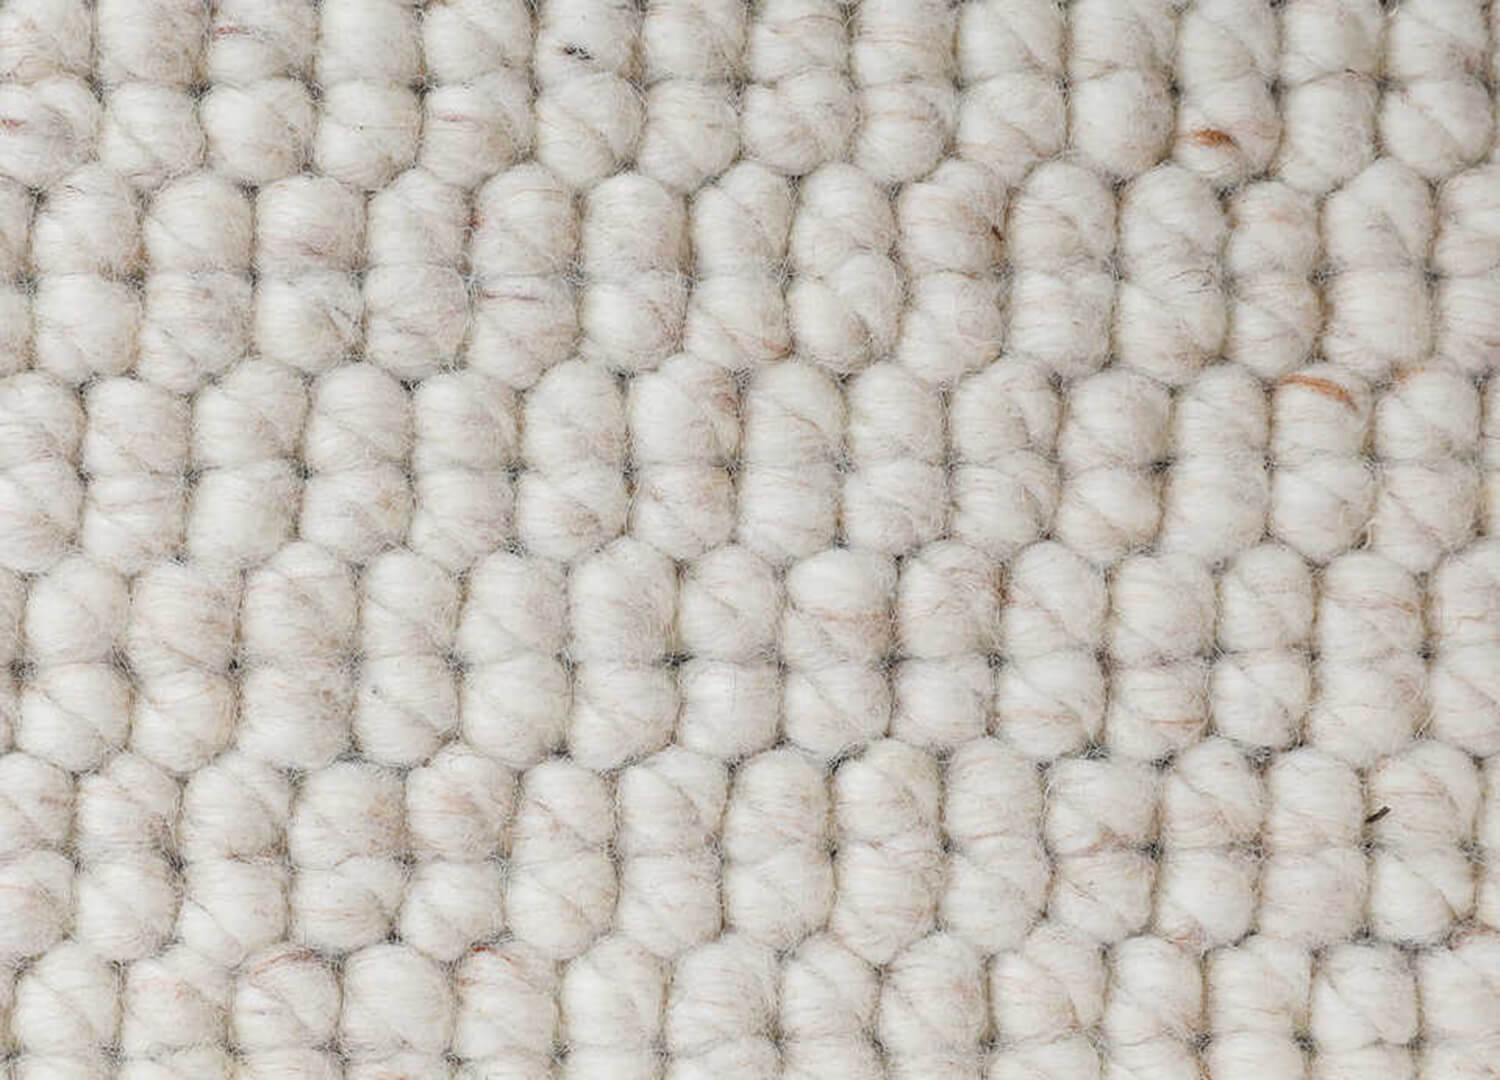 Cloud Woven Wool Rug By Natural Floorcovering Centres Est